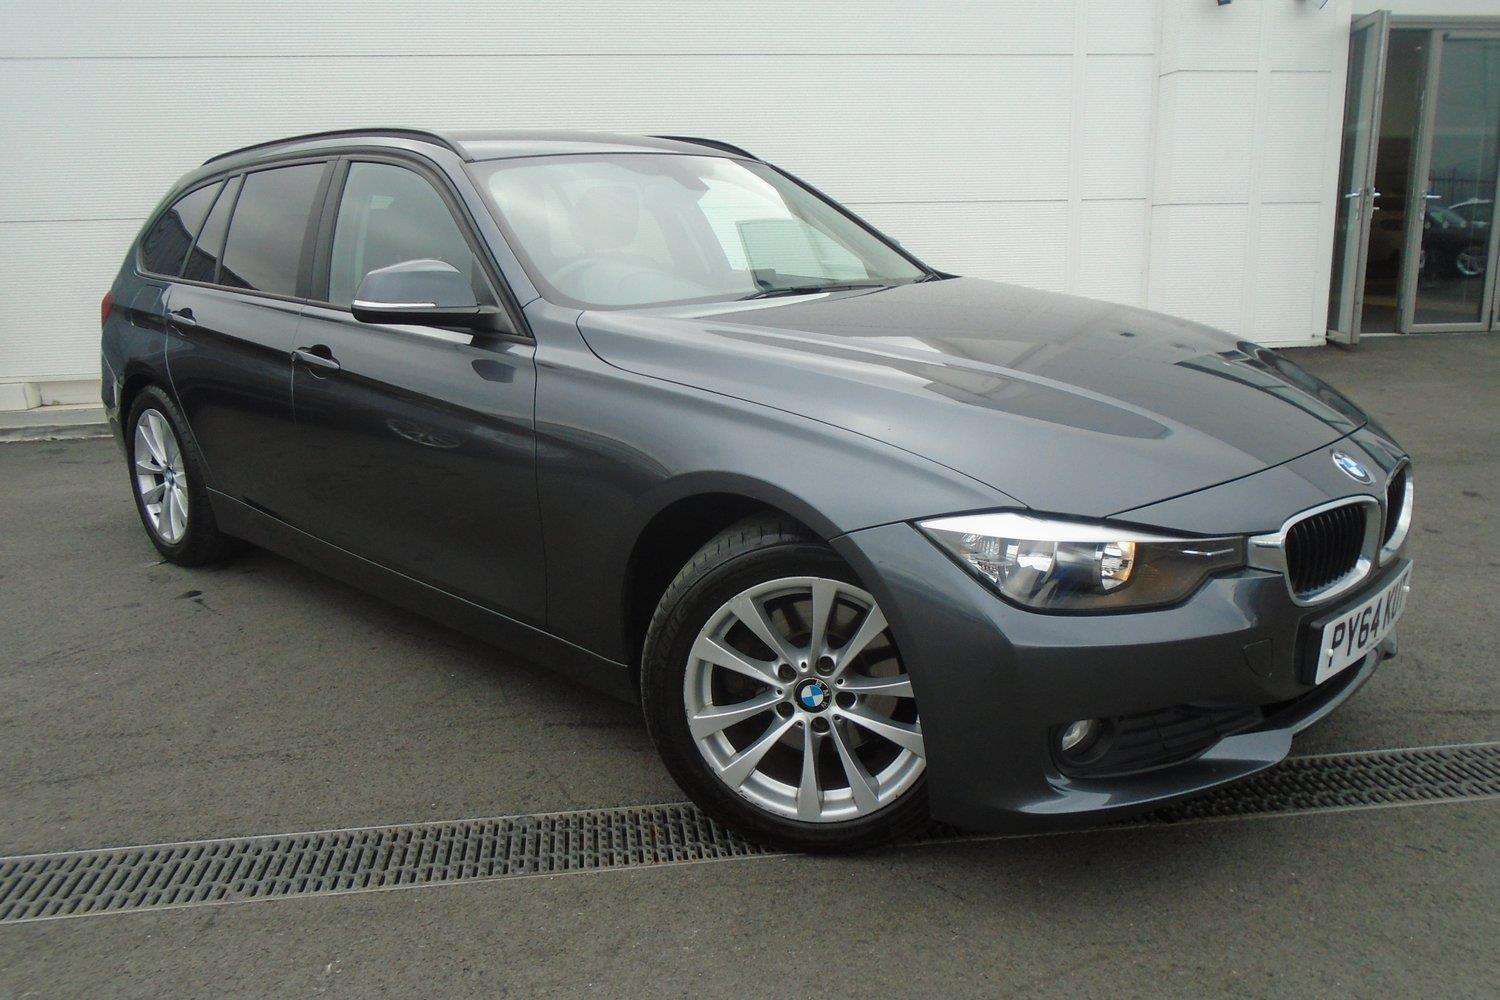 BMW 3 Series Touring PY64KUT - Image 6